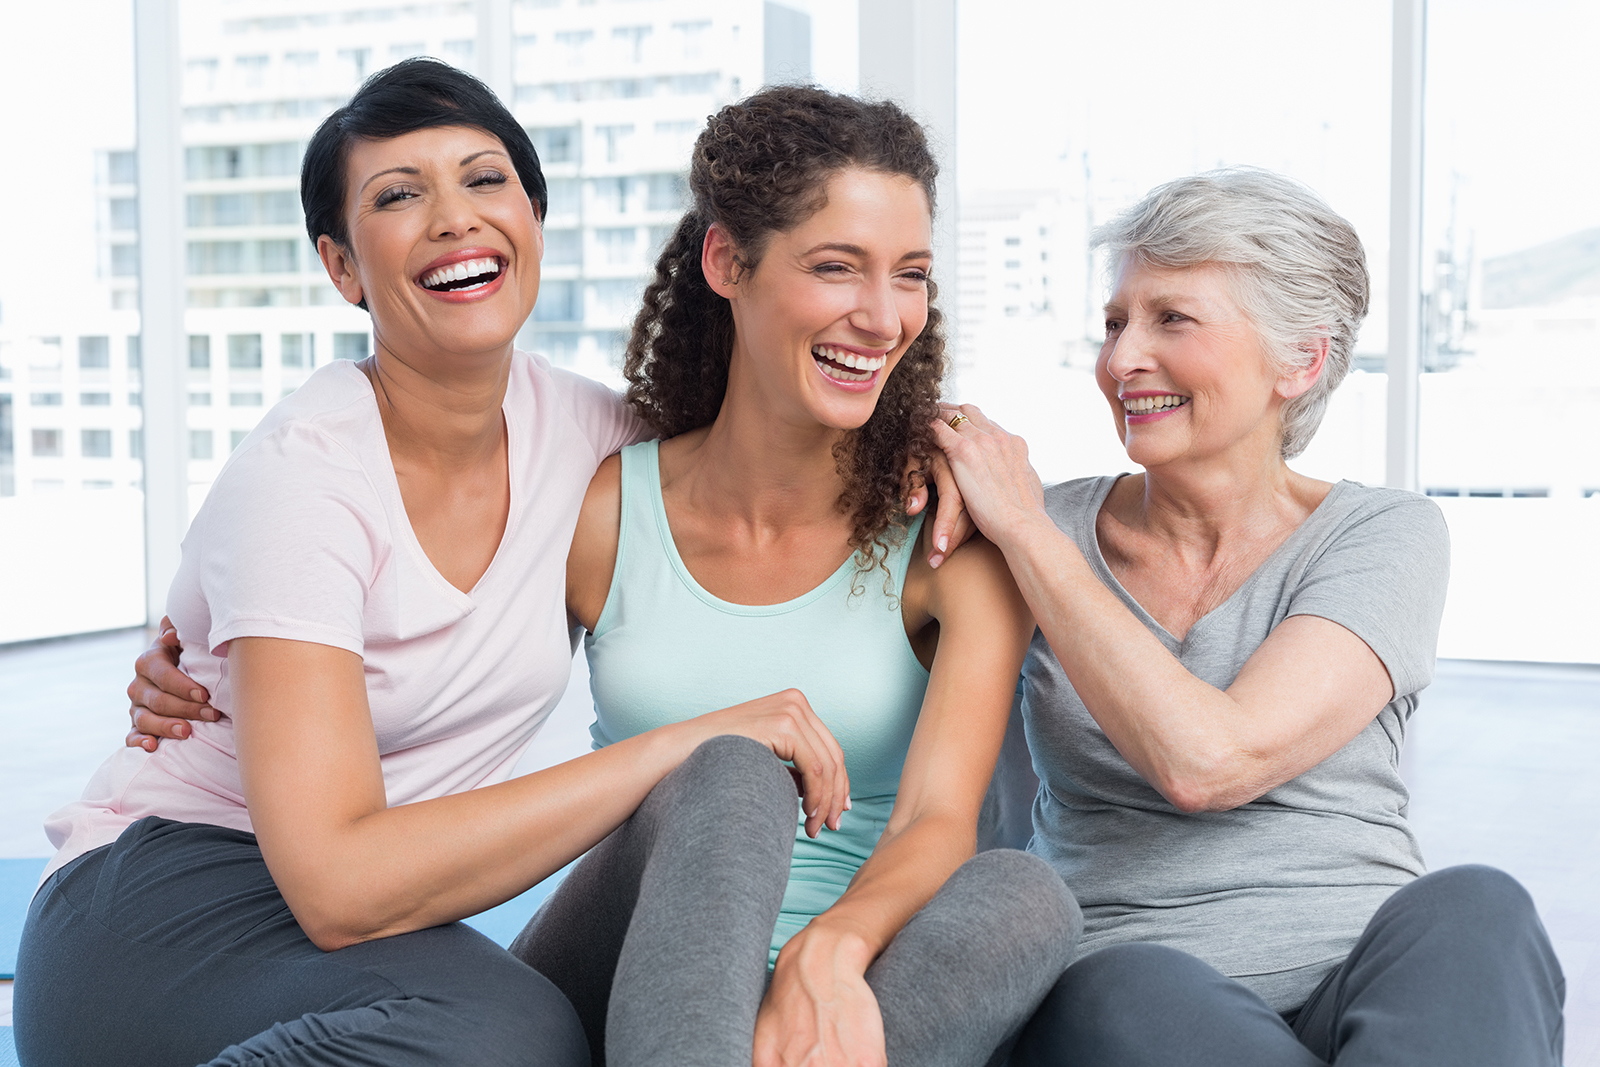 Three women supporting each other